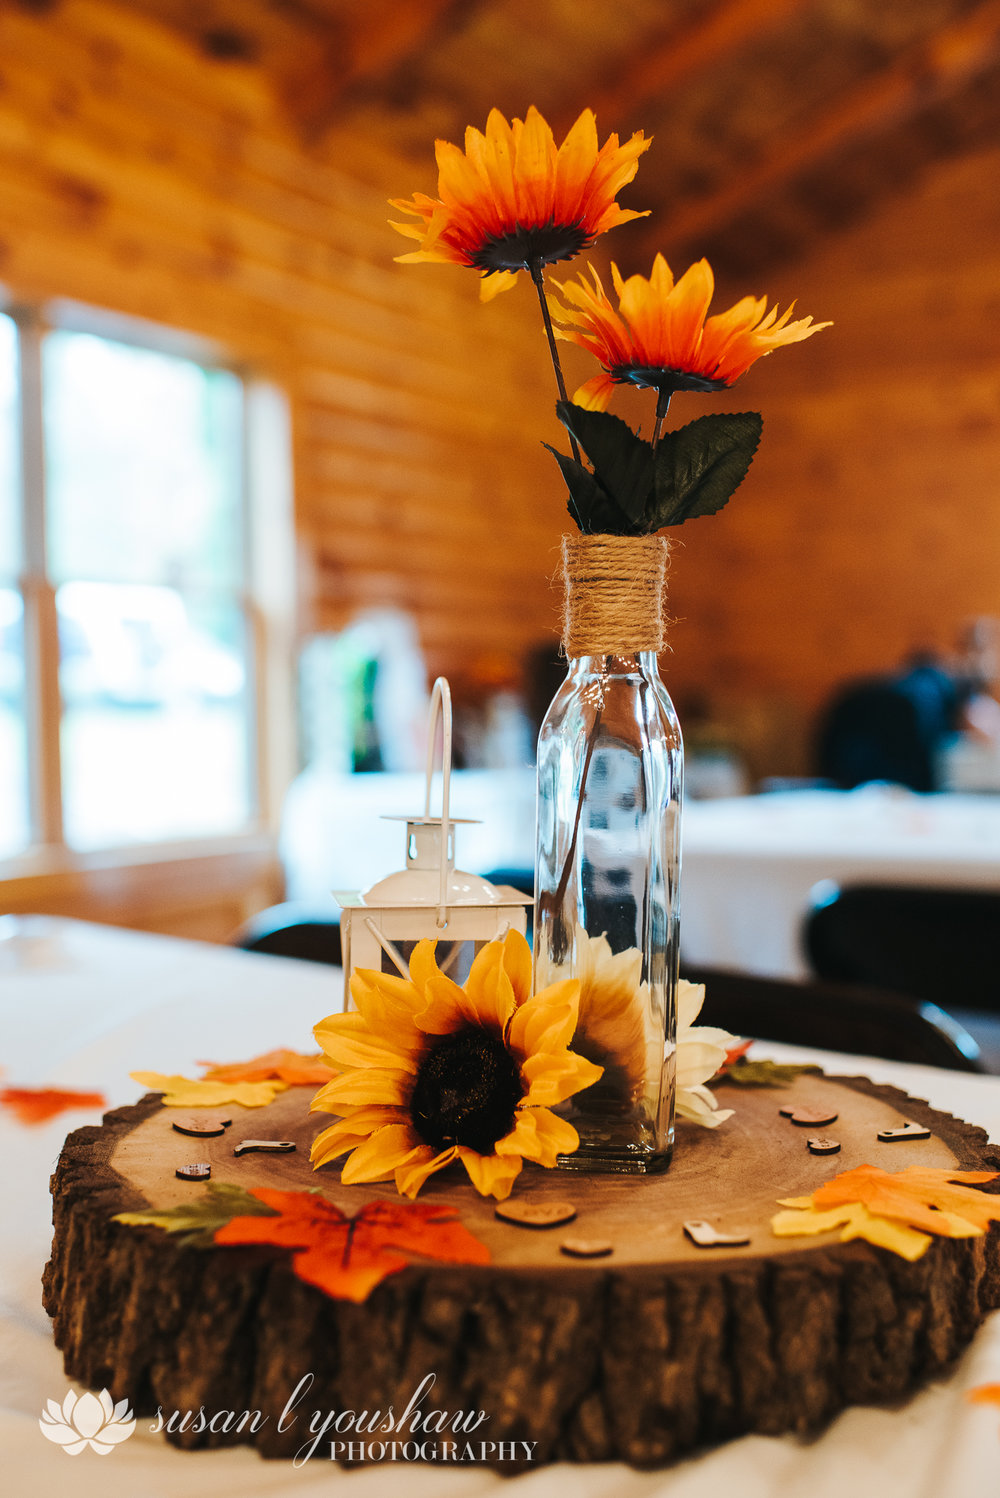 Blog Kayla and Scott 10-27-2018 SLY Photography LLC -45.jpg